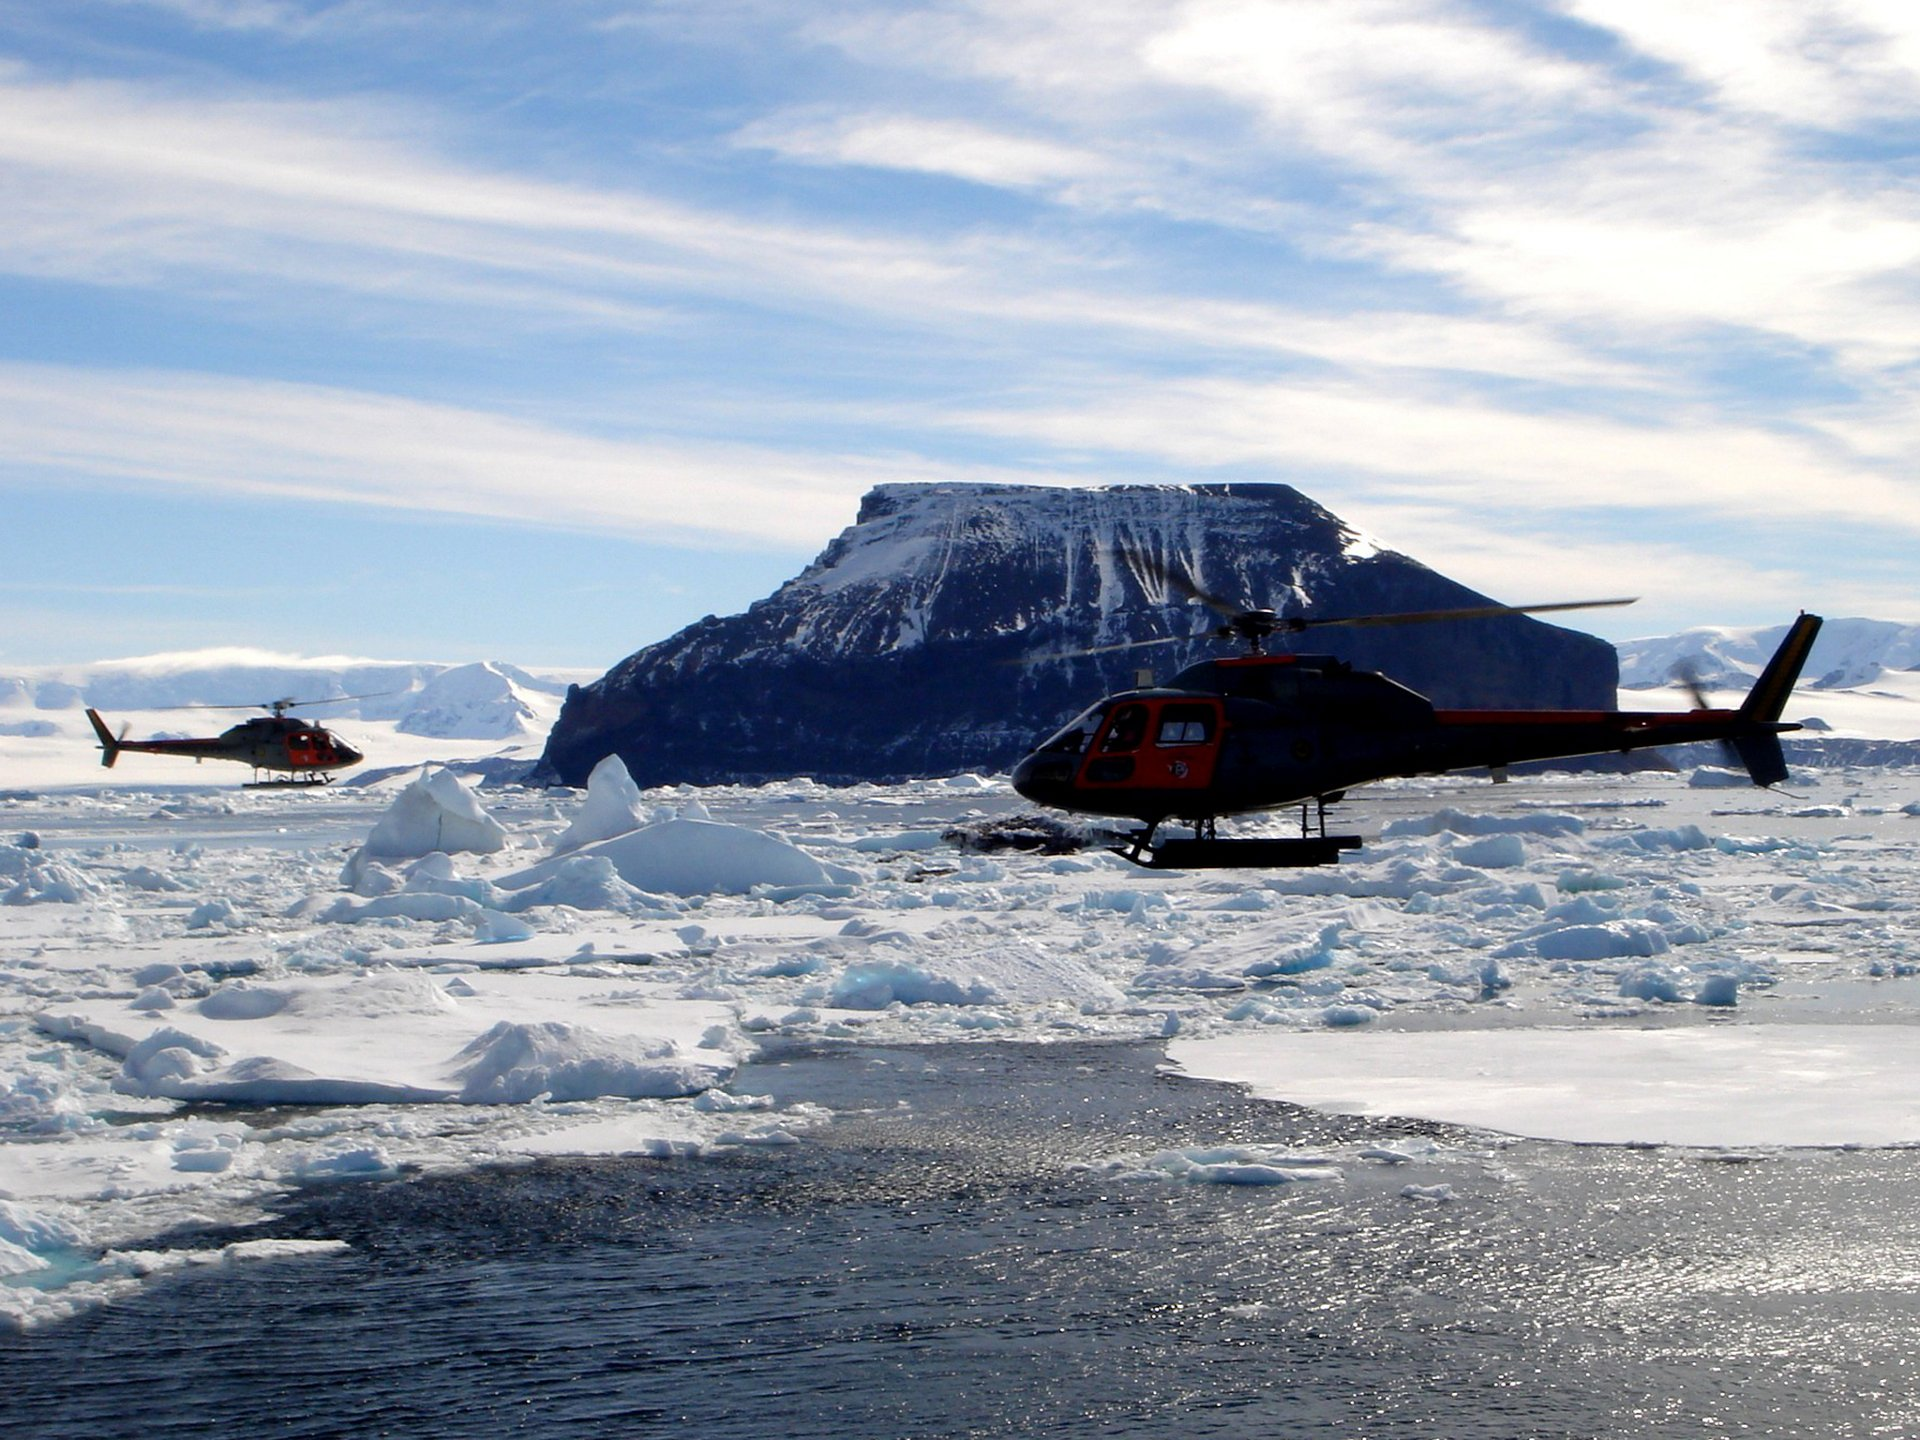 The H125 provided a range of support as part of the Brazilian Antarctic research programme PROANTAR, including the transport of goods and personnel from the ship to the research fields.